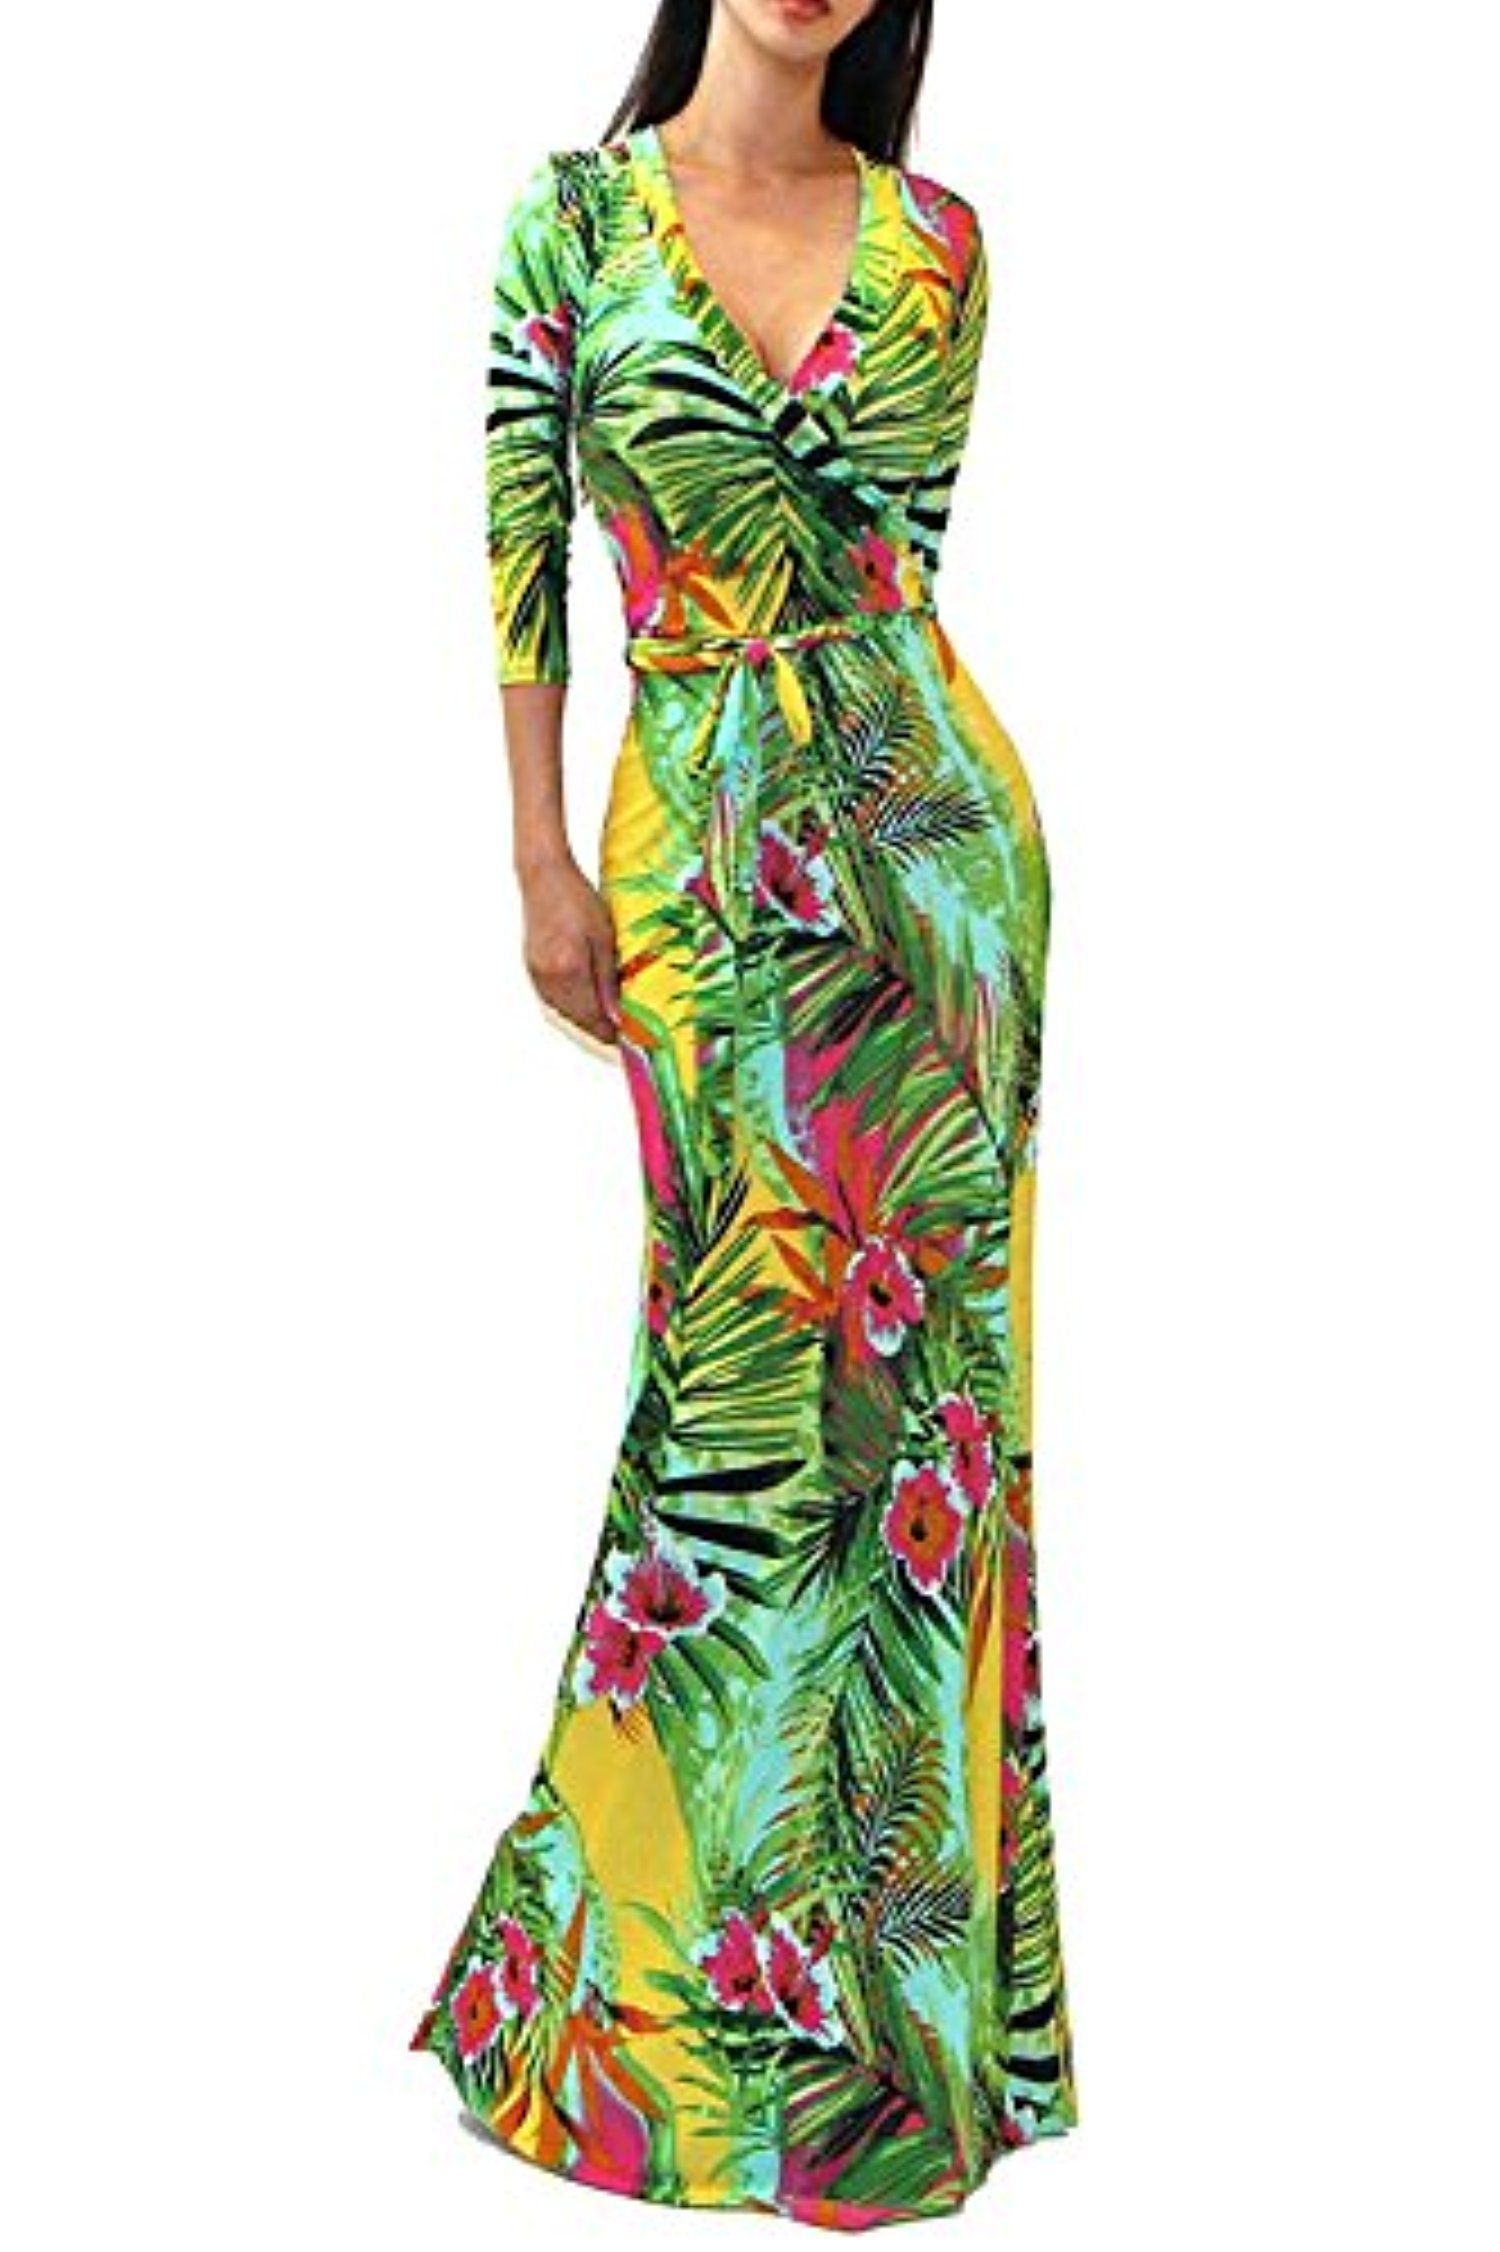 Vivicastle Women S Printed V Neck 3 4 Sleeve Wrap Waist Tie Long Maxi Dress Large H11 Green Awesome Products Selected Maxi Dress Dresses Long Maxi Dress [ 2252 x 1500 Pixel ]